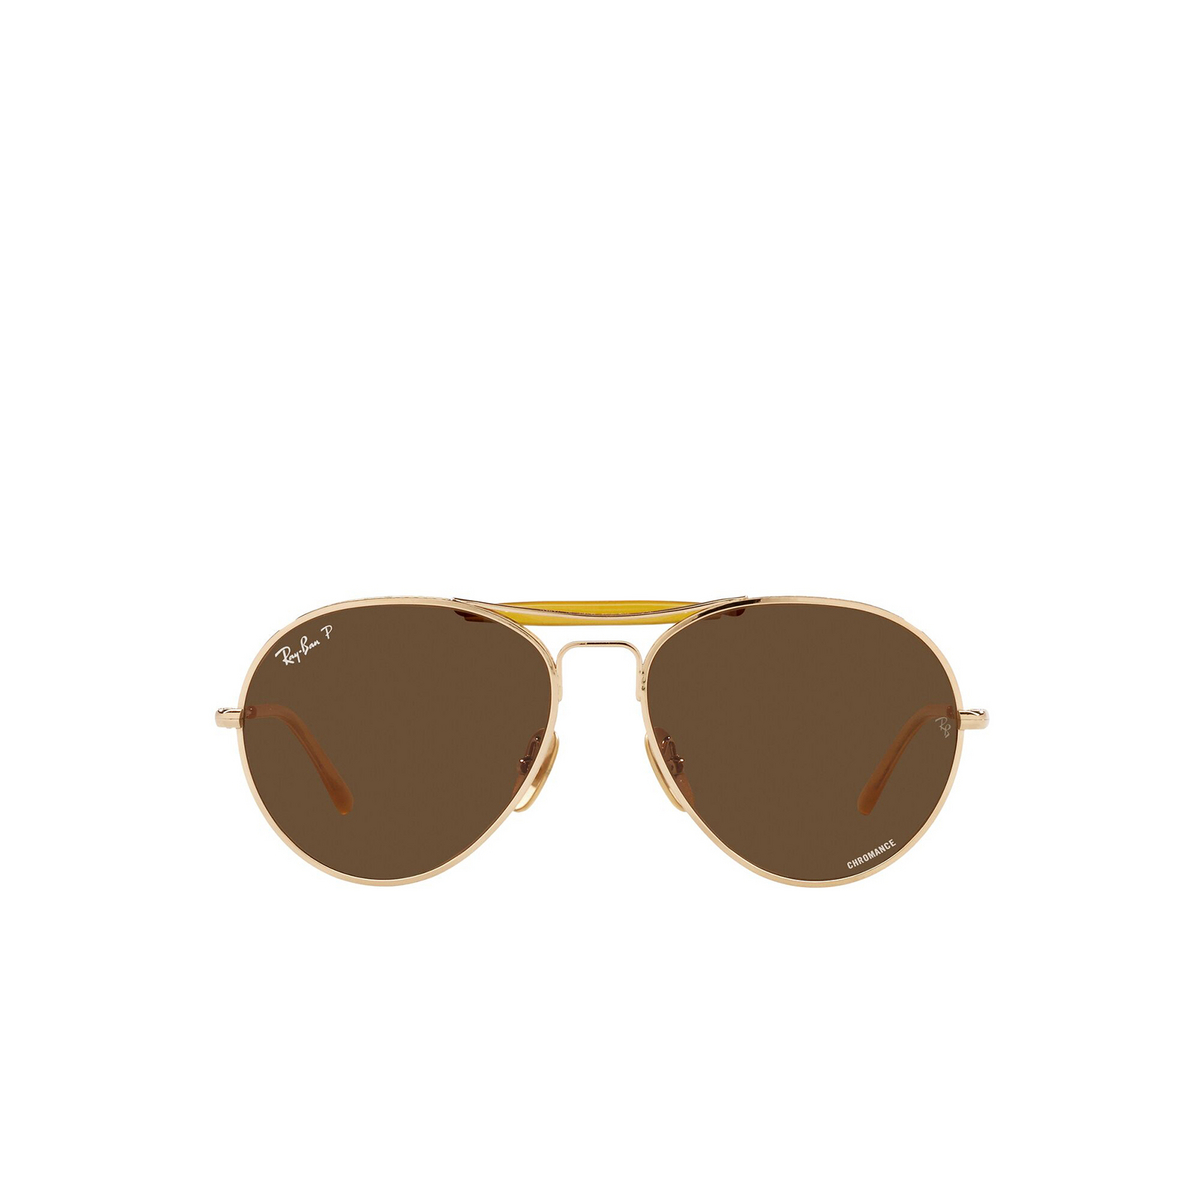 Ray-Ban® Aviator Sunglasses: RB8063 color Arista 9205AN - front view.